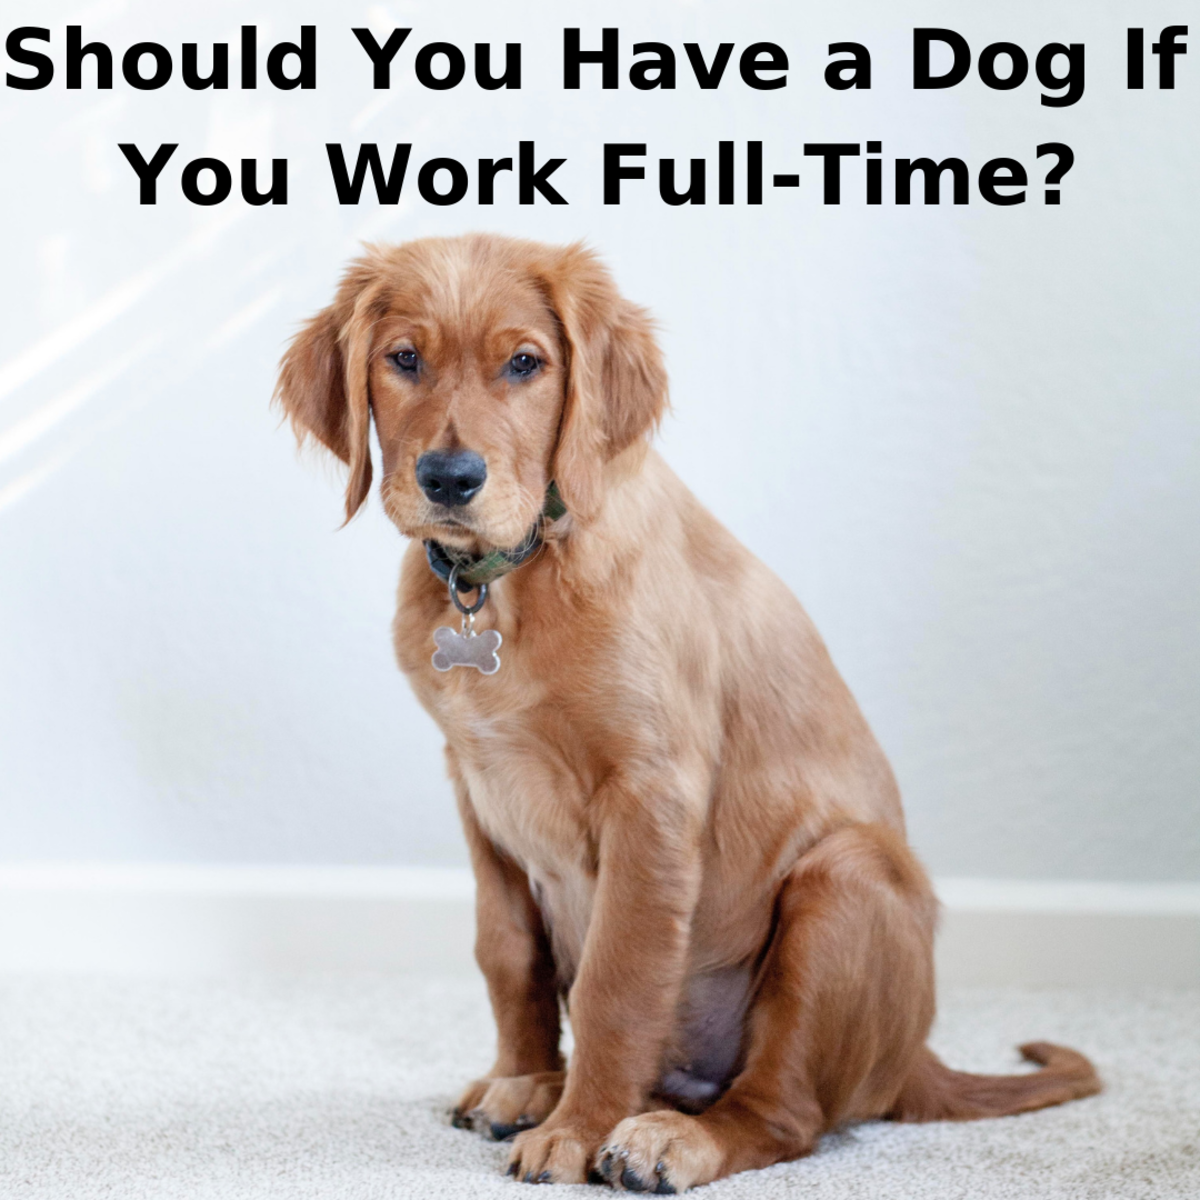 is-it-right-to-have-a-dog-and-work-full-time